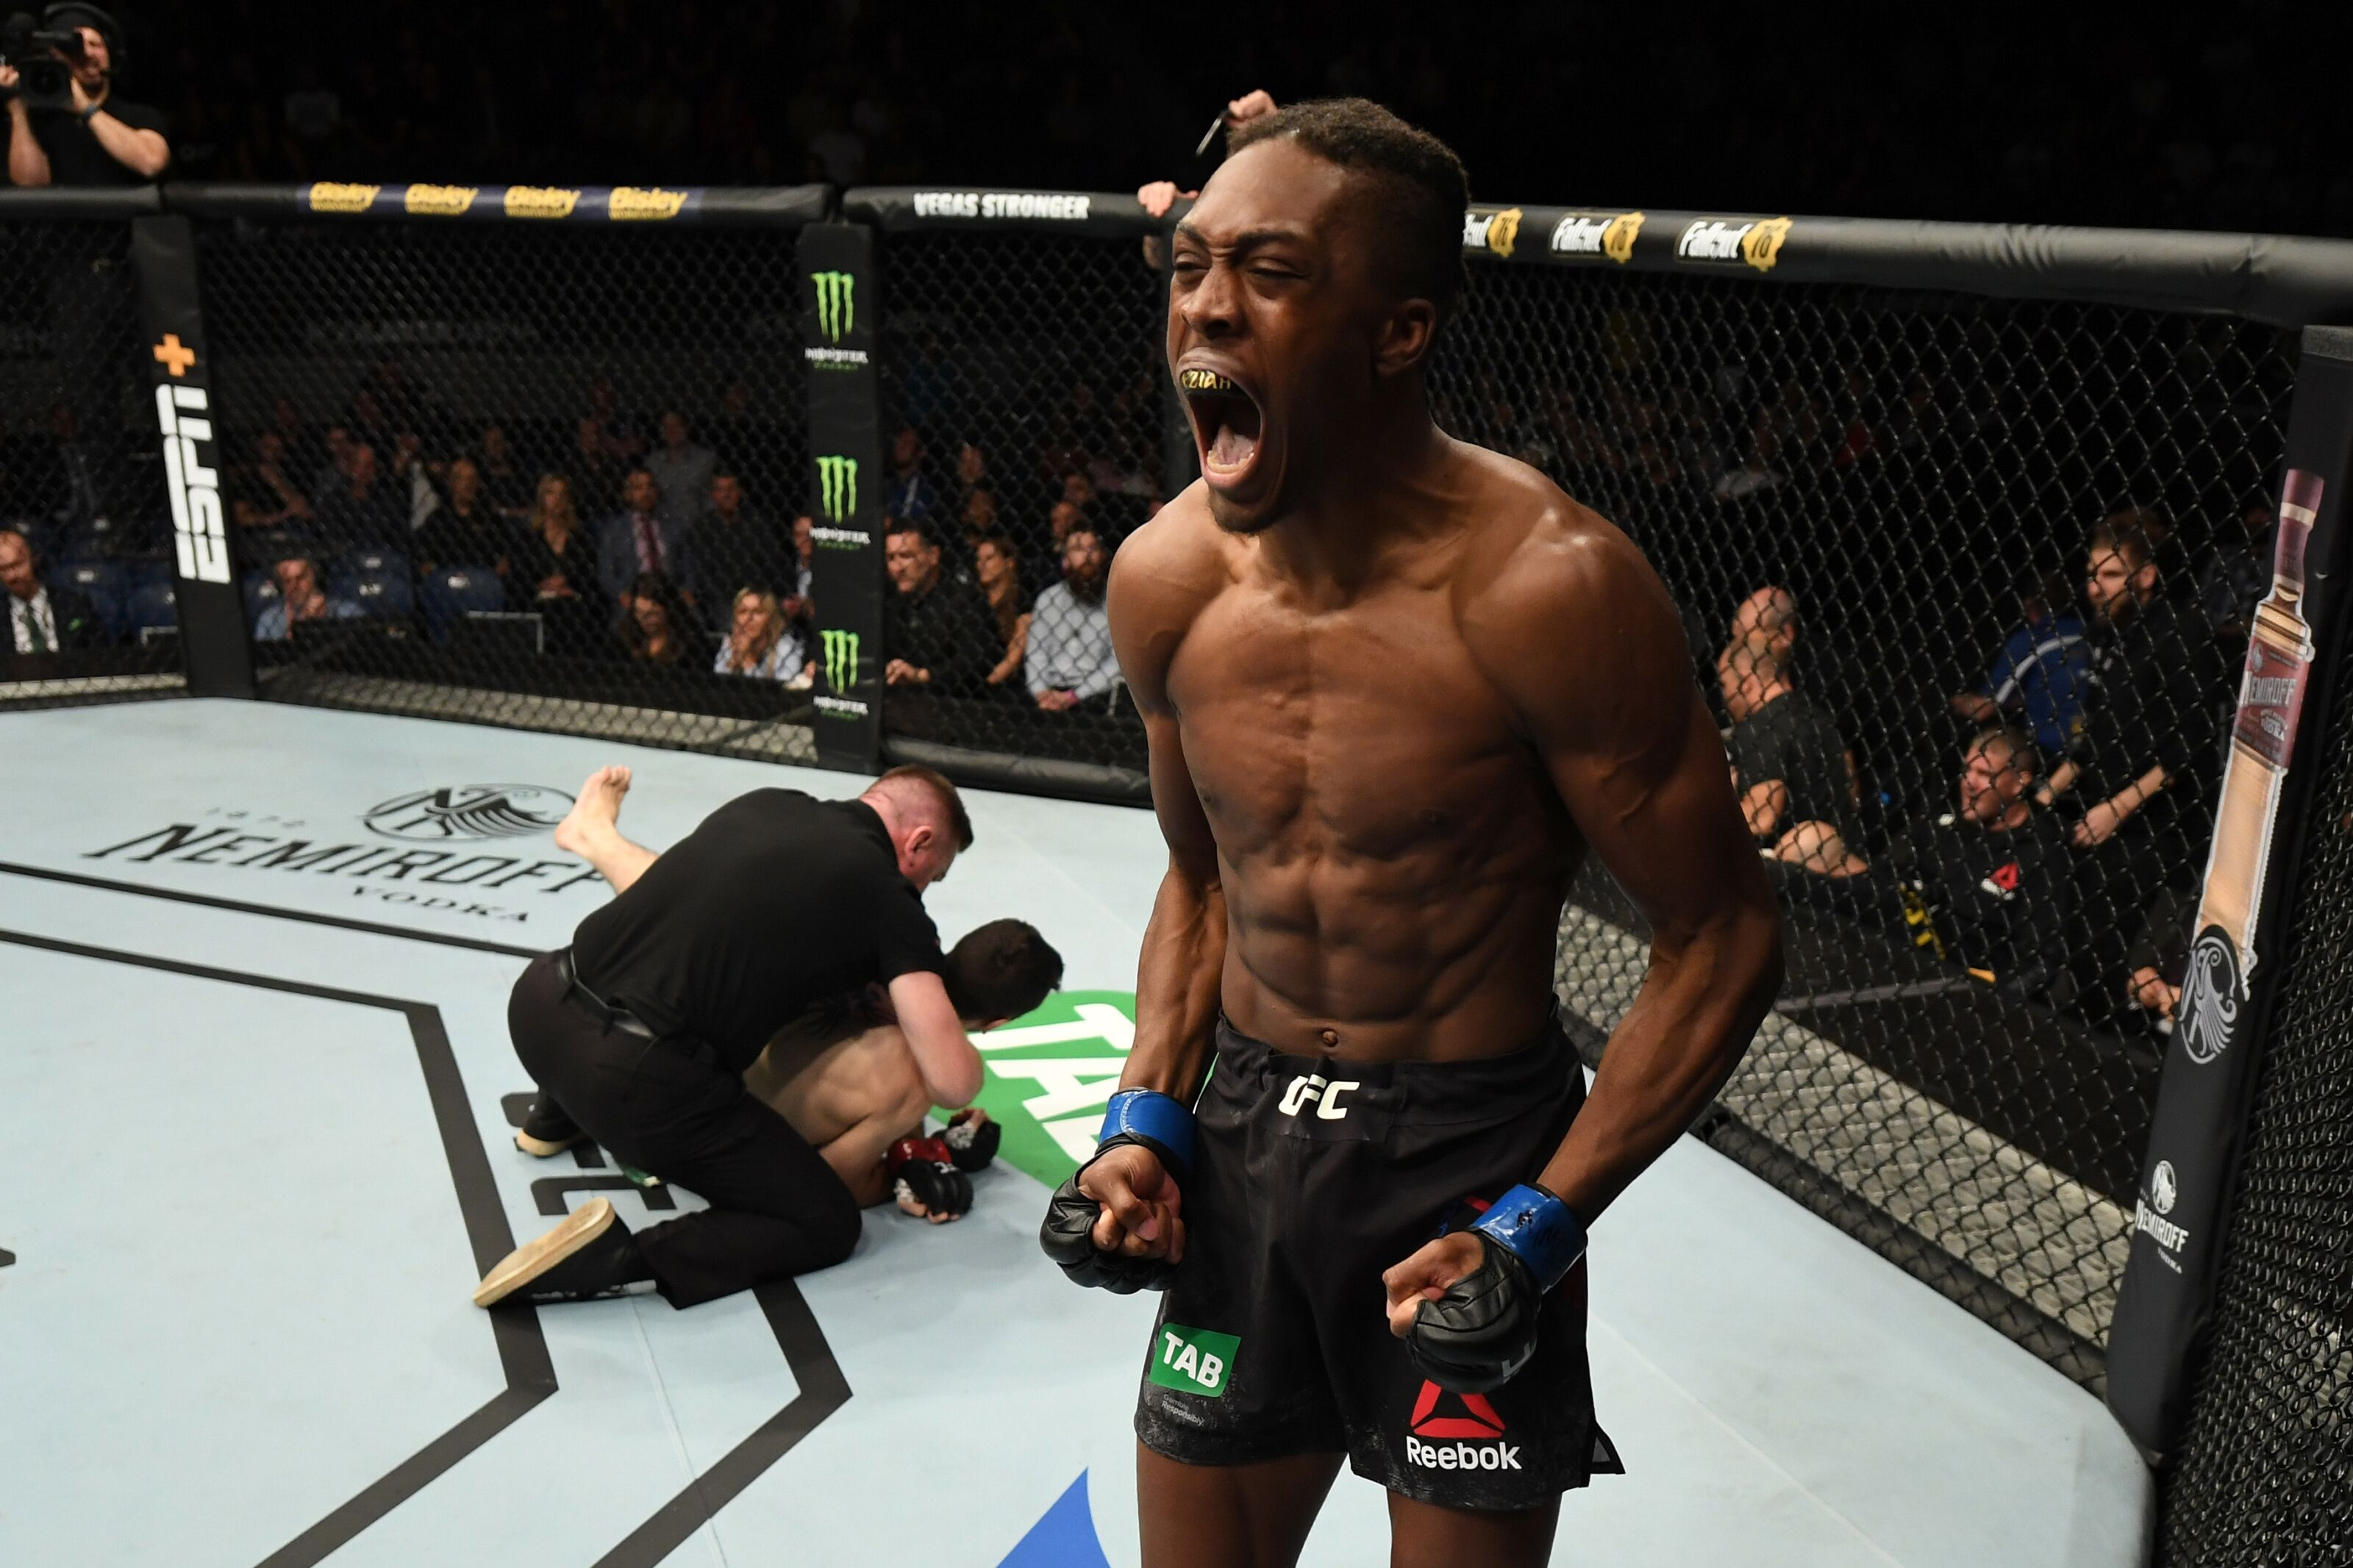 MELBOURNE, AUSTRALIA - FEBRUARY 10: Jalin Turner celebrates his KO victory over Callan Potter of Australia in their lightweight bout during the UFC 234 at Rod Laver Arena on February 10, 2019 in the Melbourne, Australia. (Photo by Jeff Bottari/Zuffa LLC/Zuffa LLC via Getty Images)